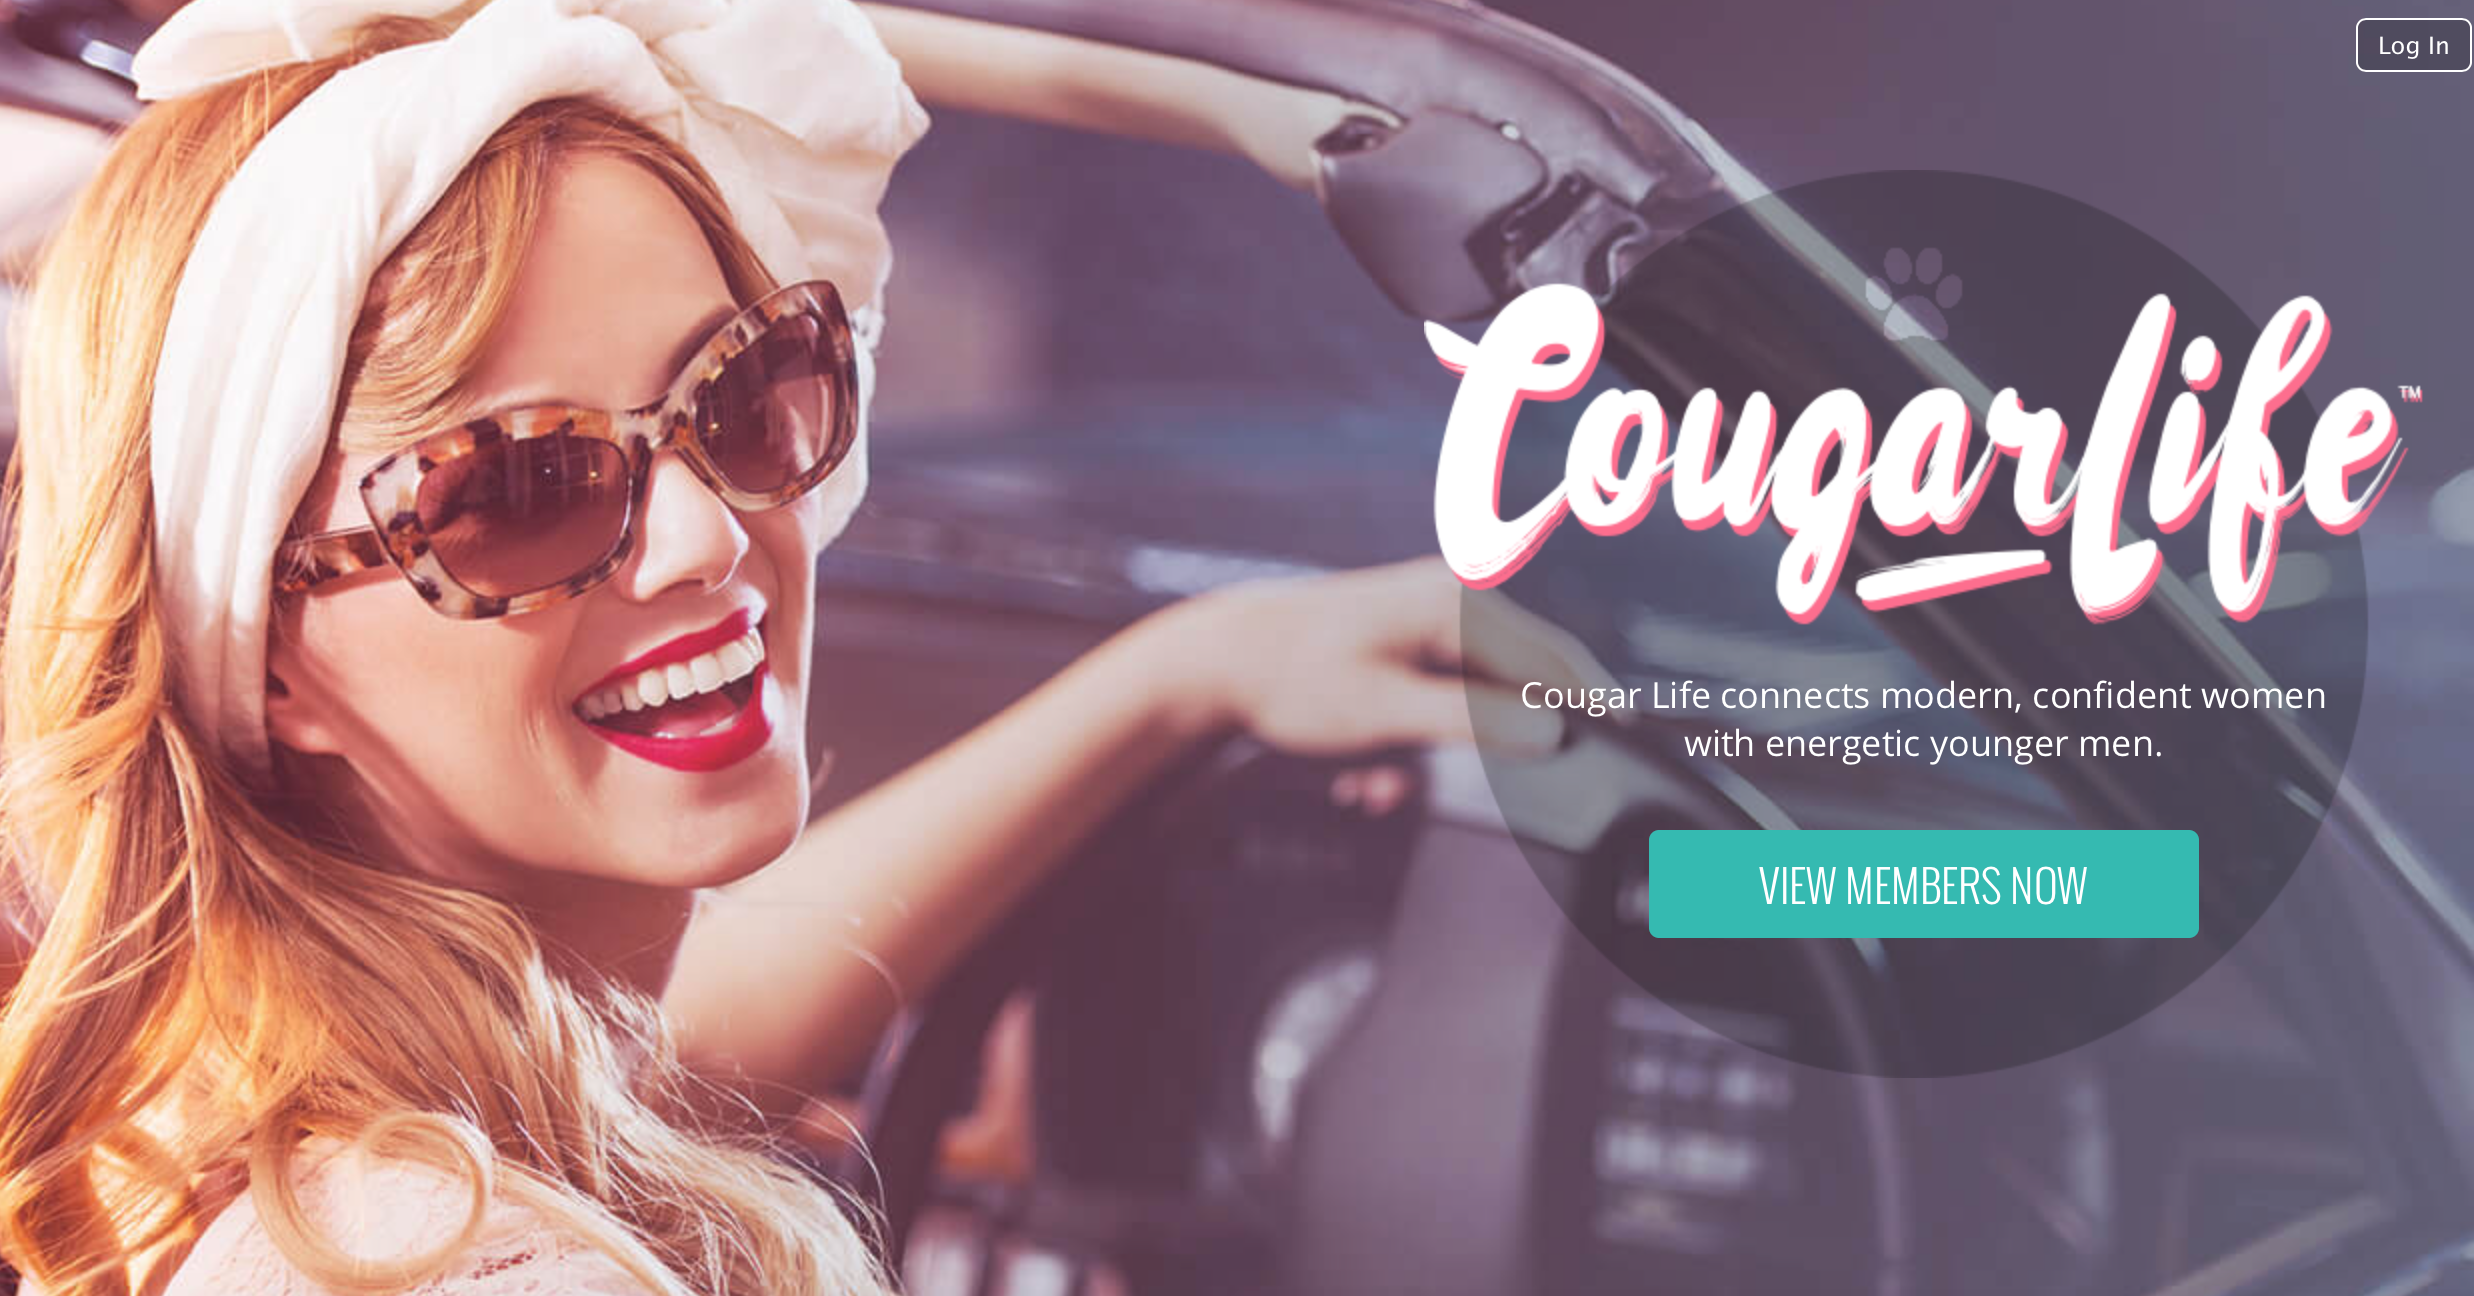 free cougar dating vancouver Free dating in vancouver - if you are lonely and looking for a relationship, then our dating site is your chance to find girlfriend, boyfriend or get married.